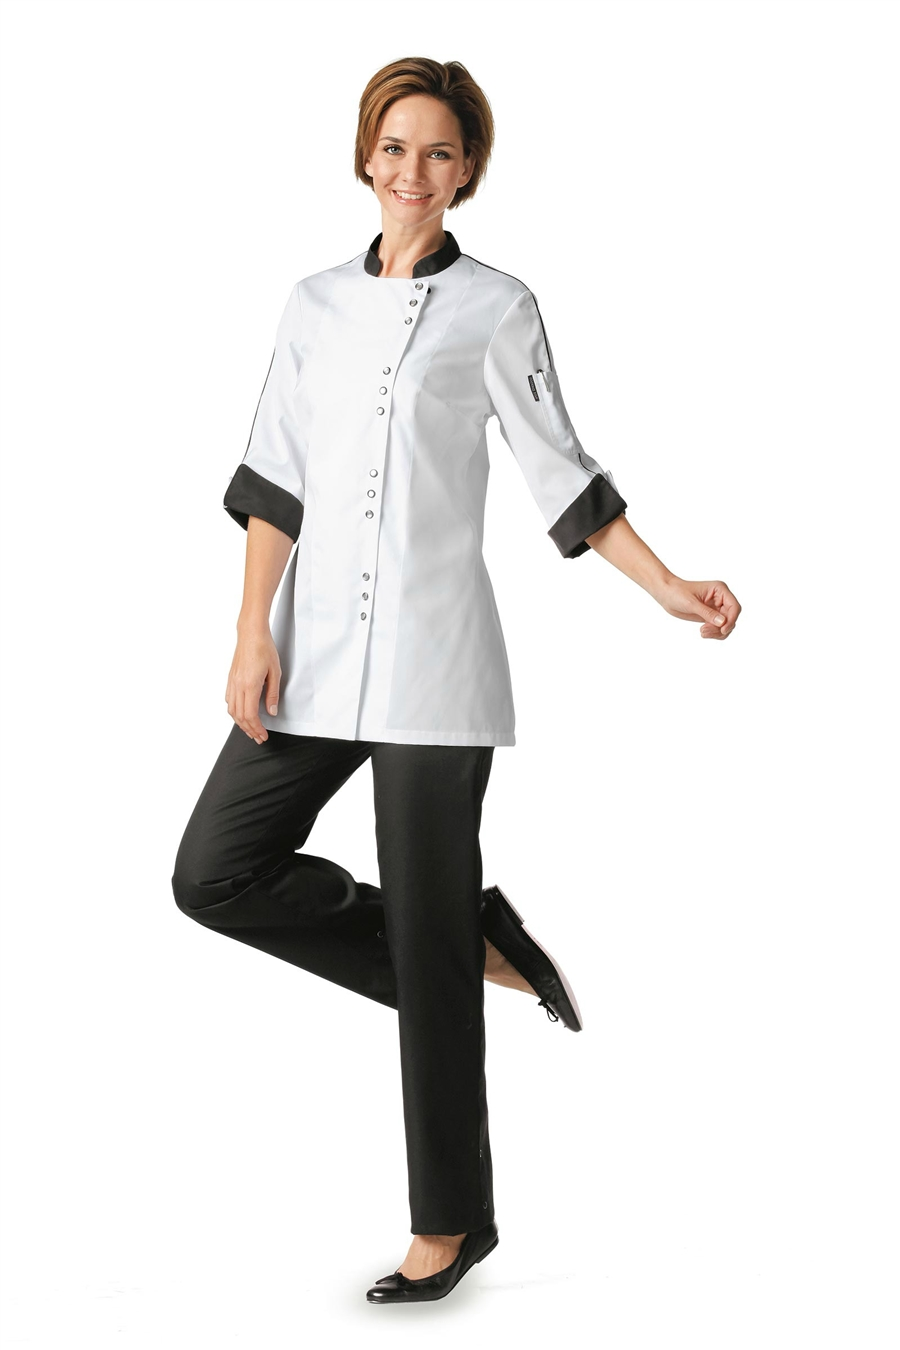 Designer Chef Jackets for Women